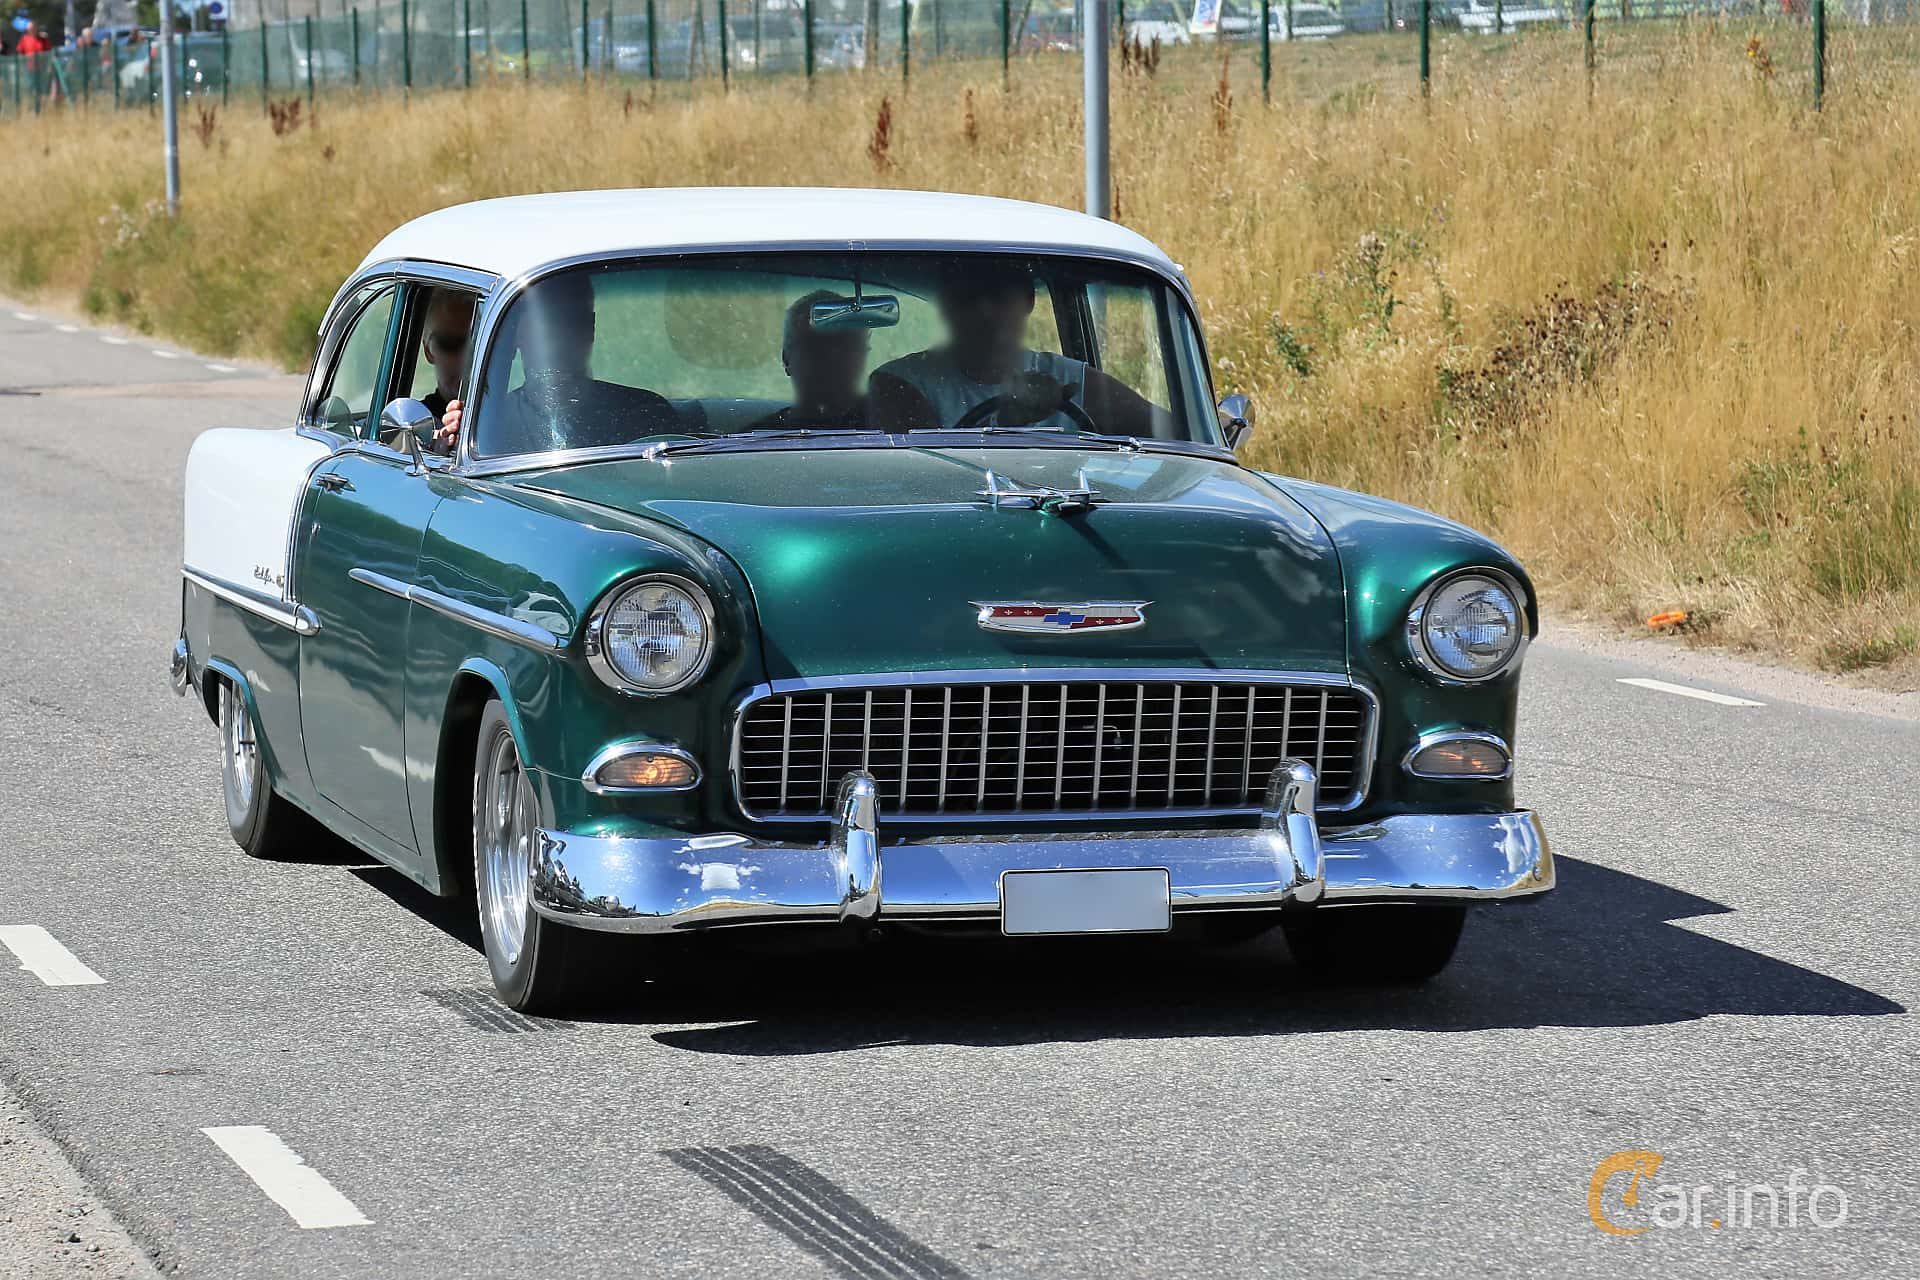 Chevrolet Bel Air 2-door Sedan 4.3 V8 Powerglide, 183hp, 1955